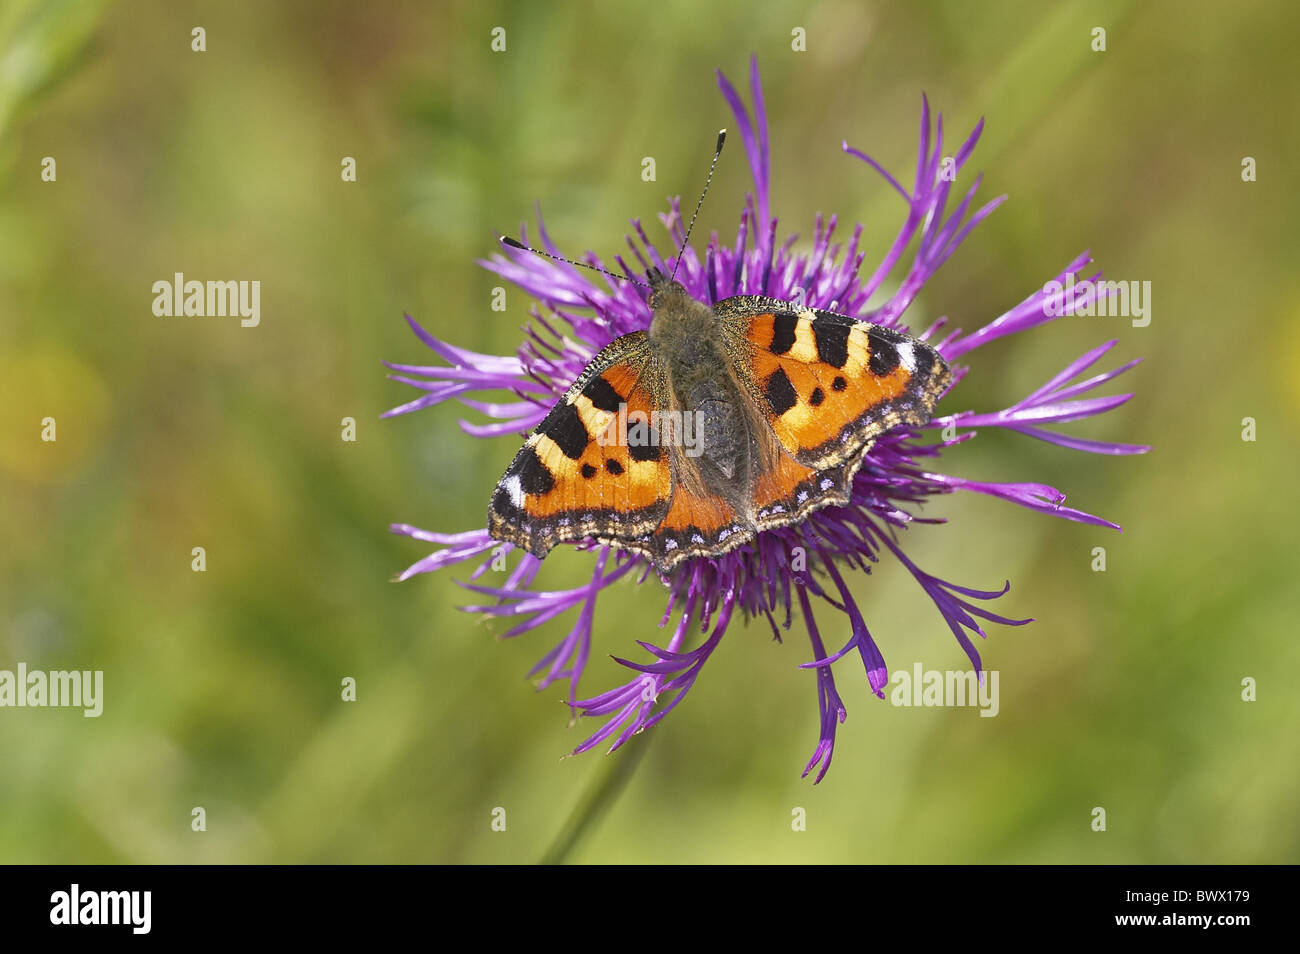 Small Totoiseshell Aglais urticae nectaring Greater Knapweed Centaurea scabiosa summer Gloucestershire wings colour - Stock Image